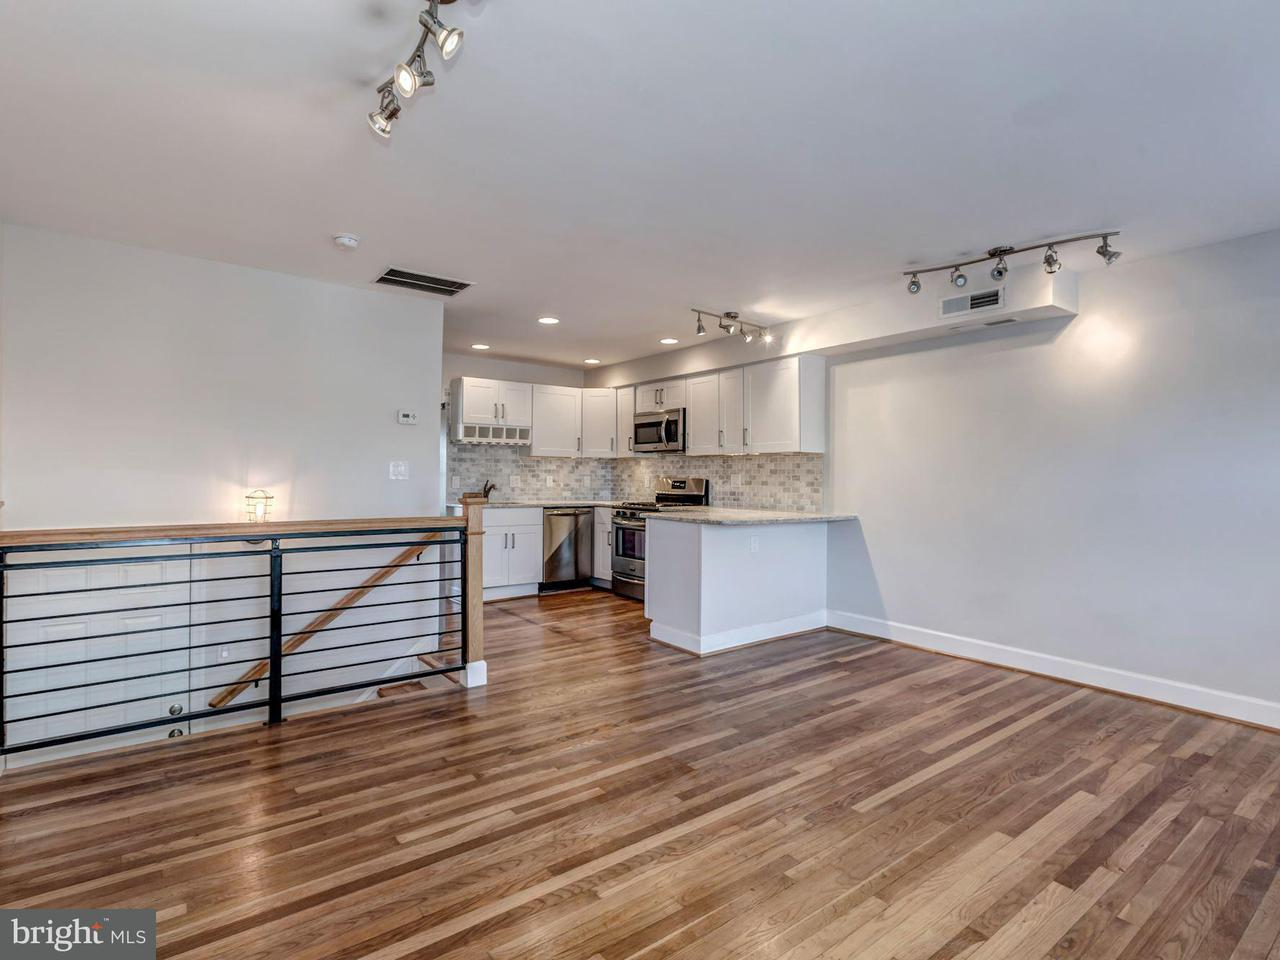 Condominium for Rent at 231 Florida Ave NW #3 Washington, District Of Columbia 20001 United States